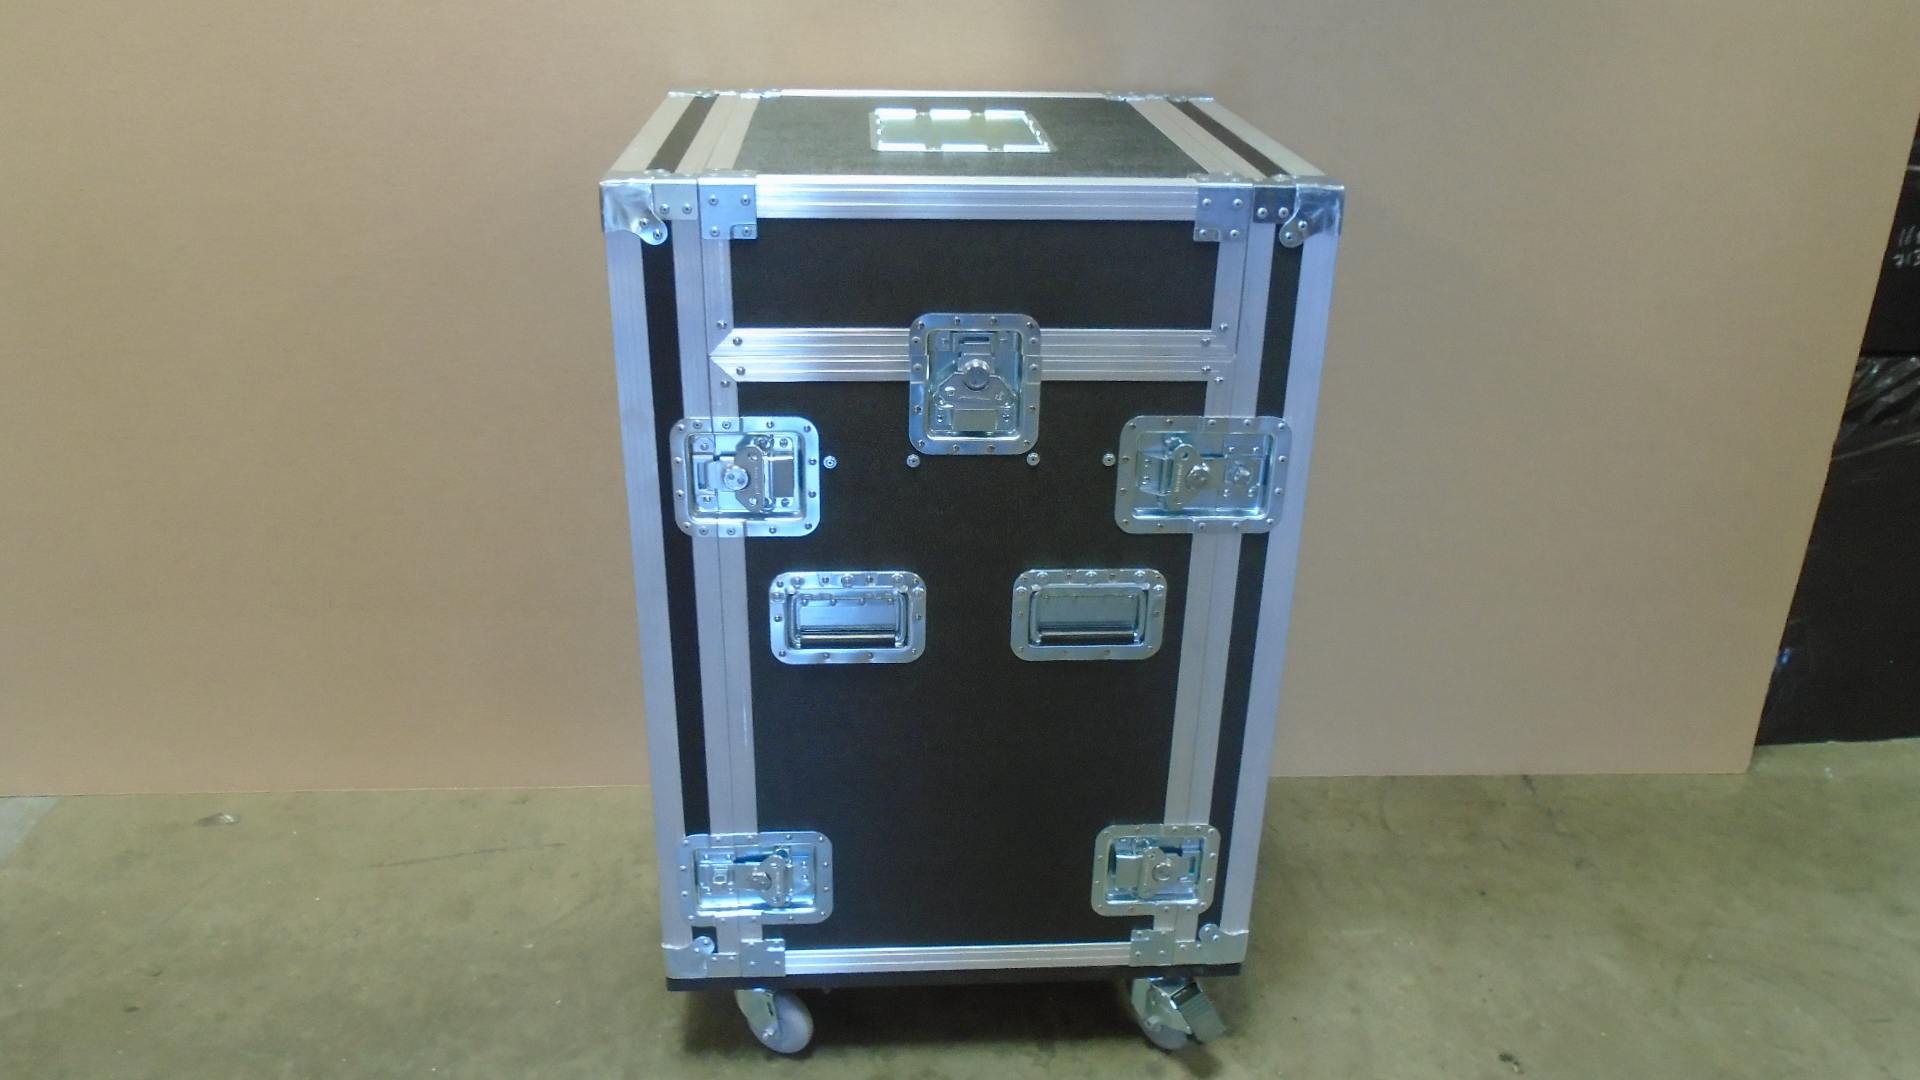 Print # 7641 - Custom Mixer Mount Road Rack Shock Mount Case By Nelson Case Corp